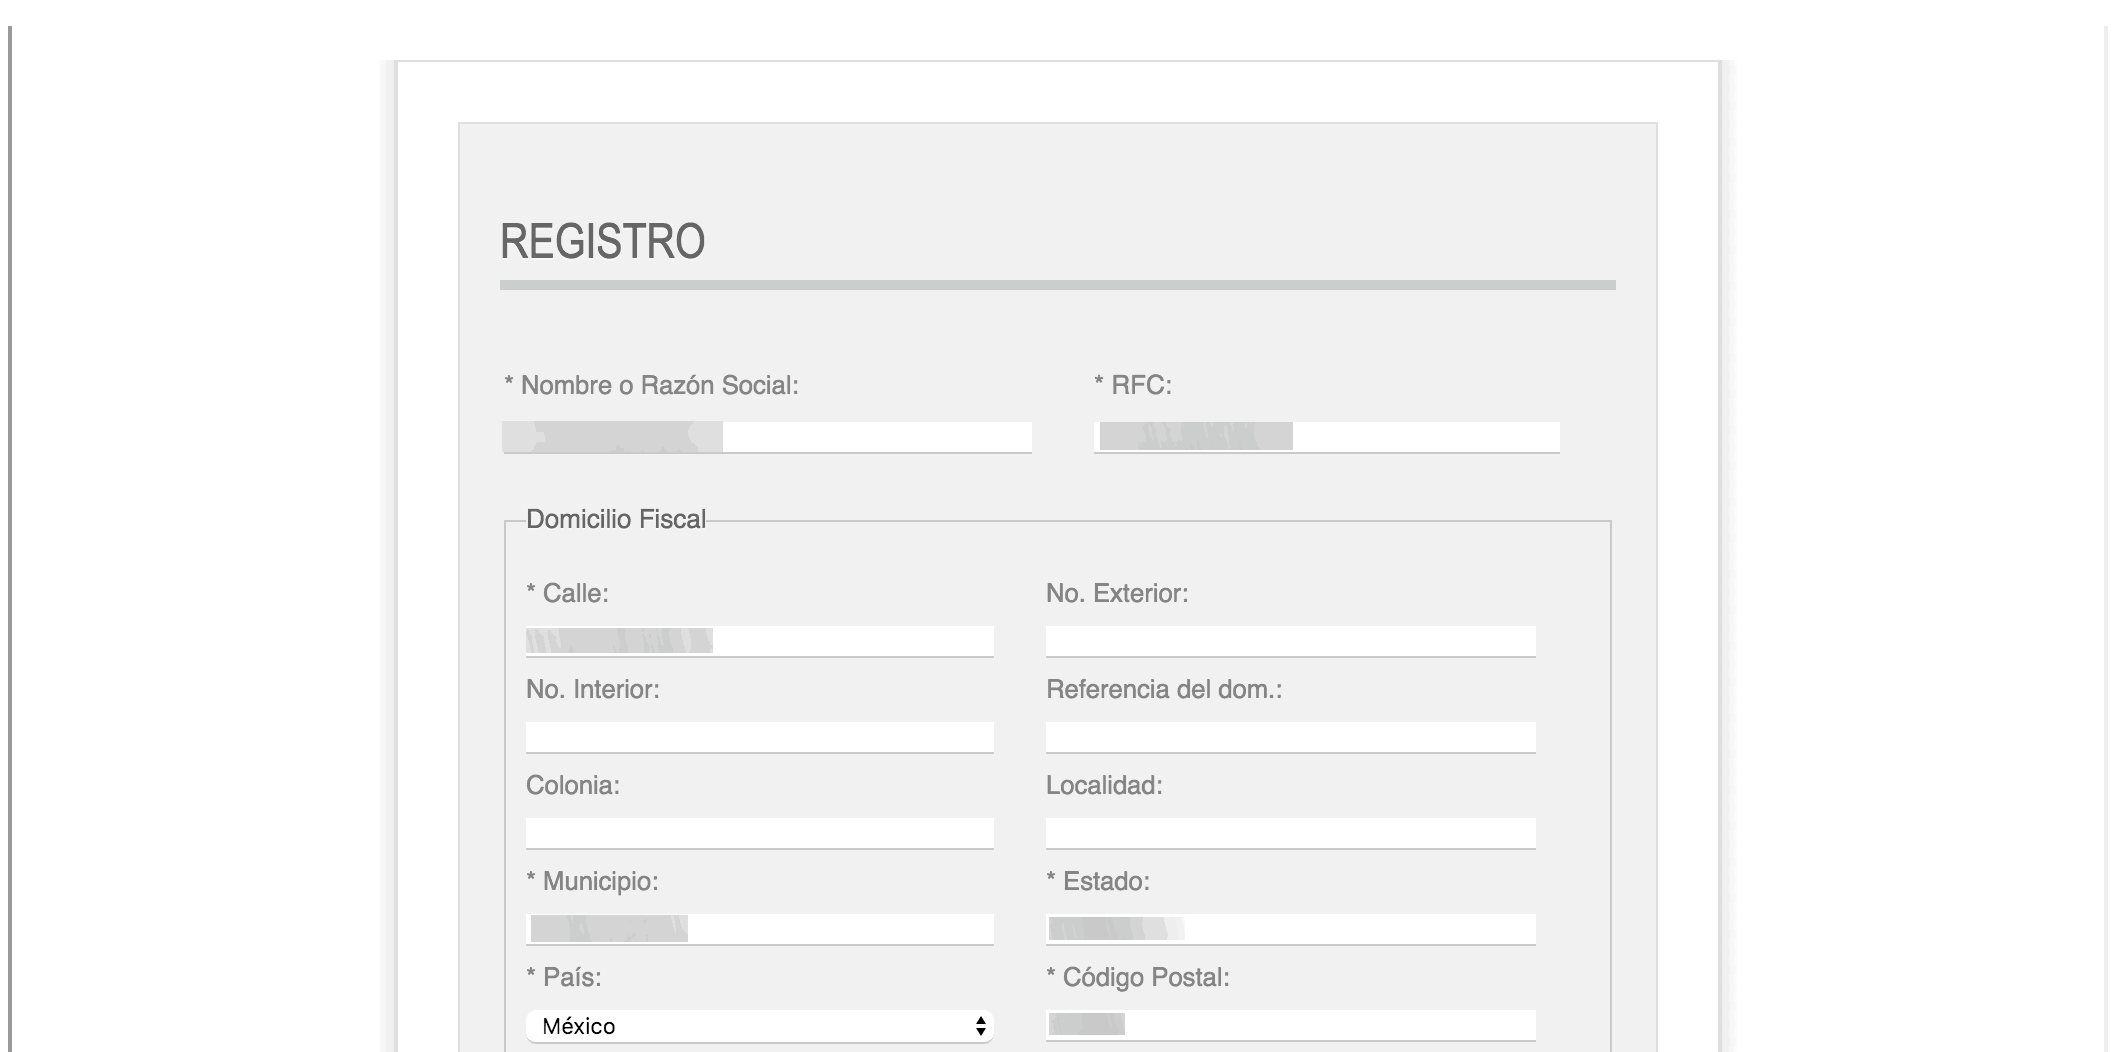 Capturar datos de Registro